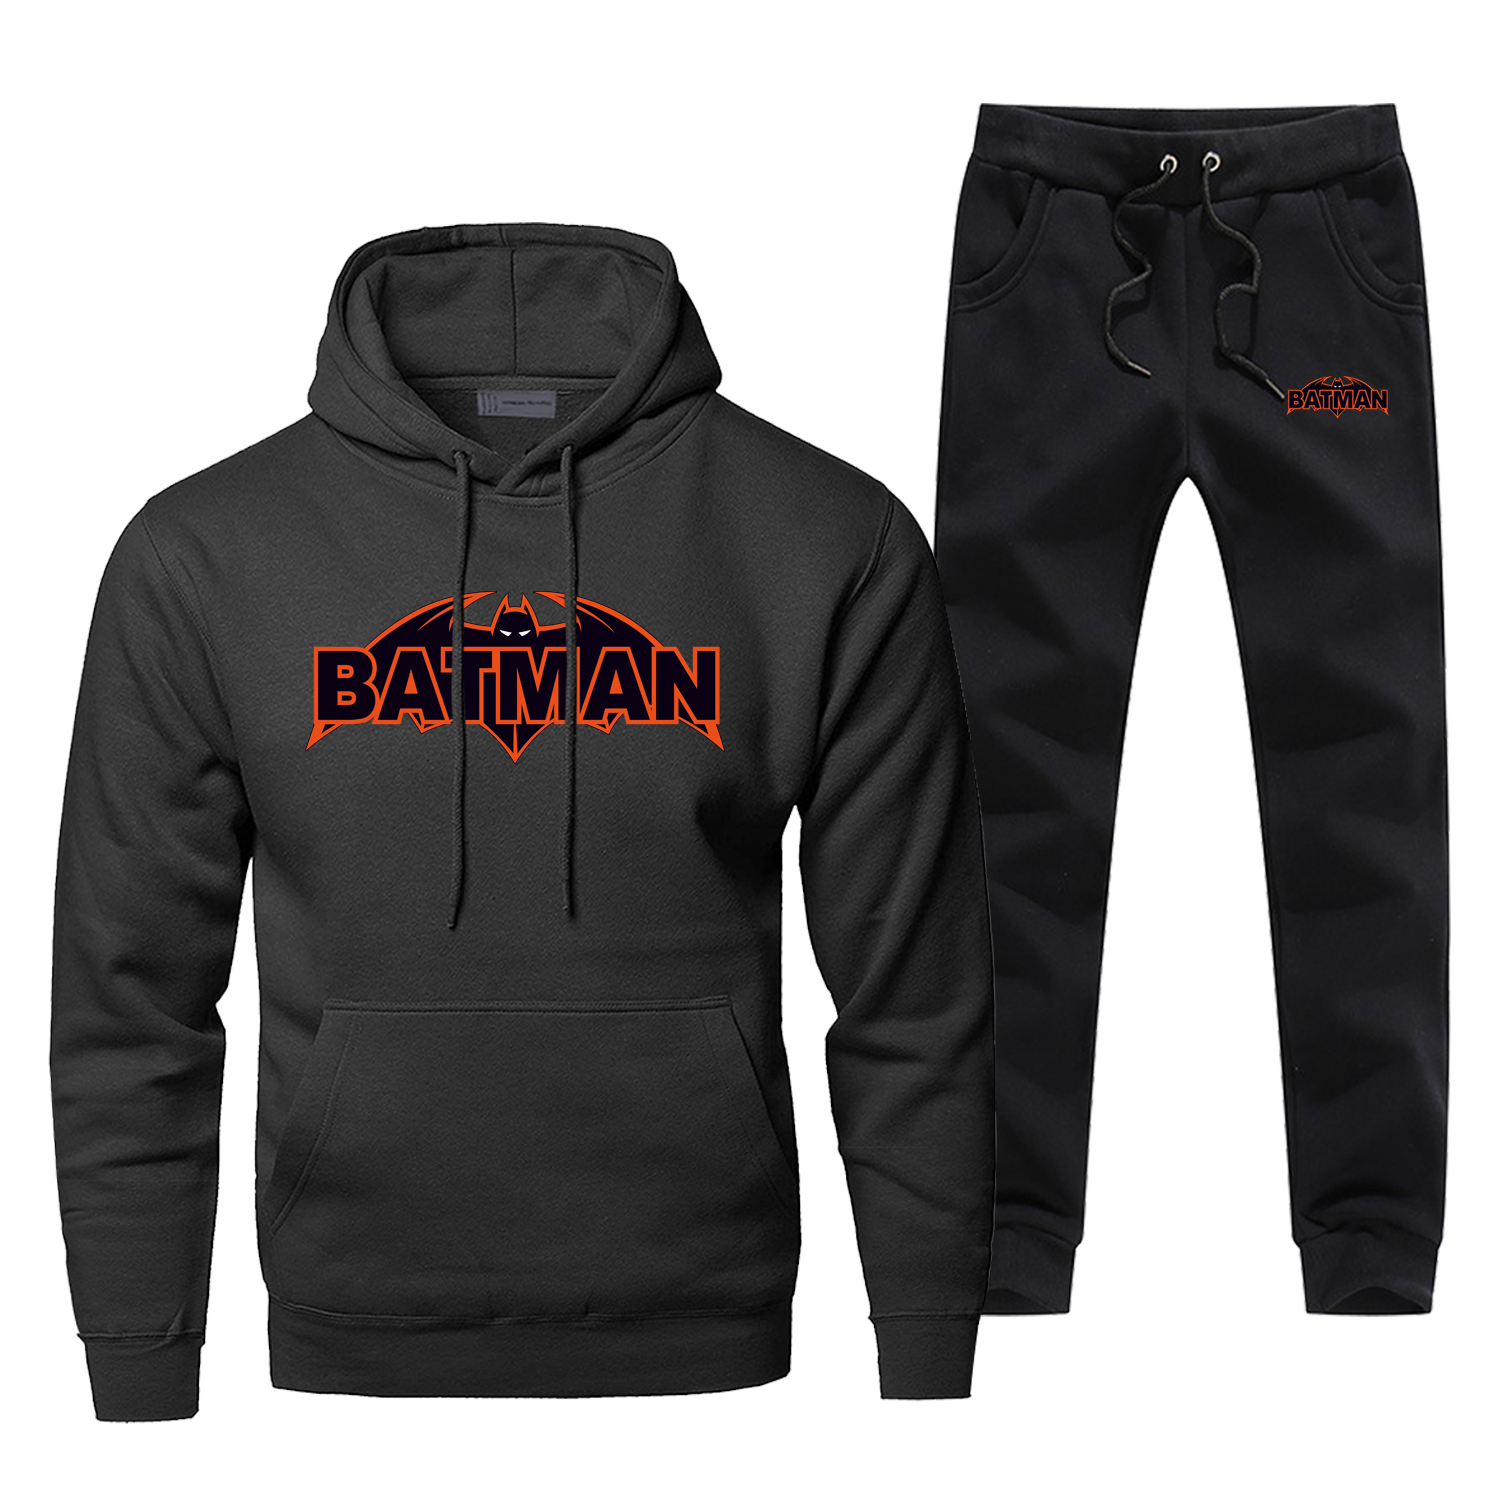 Fashion Superhero Batman Logo Hoodies+pants Sets Sweatshirt Men Hip Hop Tracksuit Winter Casual Fleece Streetwear Sportswear